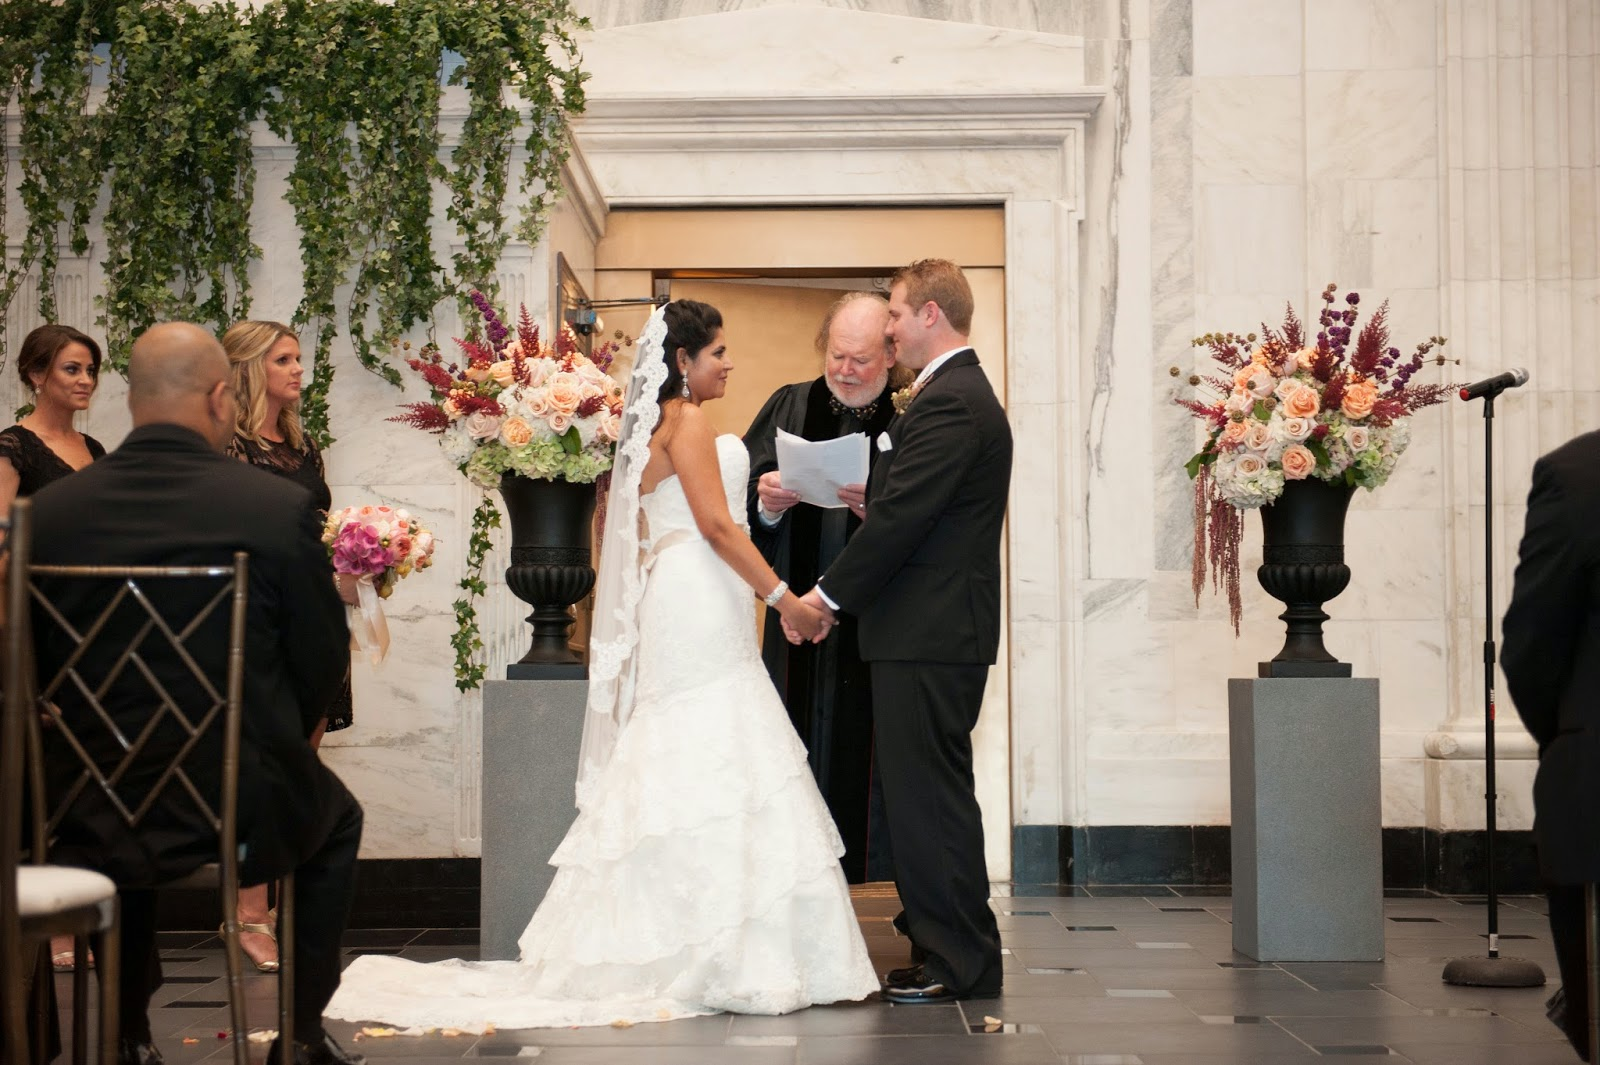 Sixty State Place Wedding - Ceremony Decor Flower Urns- Downtown Albany NY Wedding - Old Historical Bank Wedding - Historical Venue Wedding - Upstate NY - Splendid Stems Floral Designs